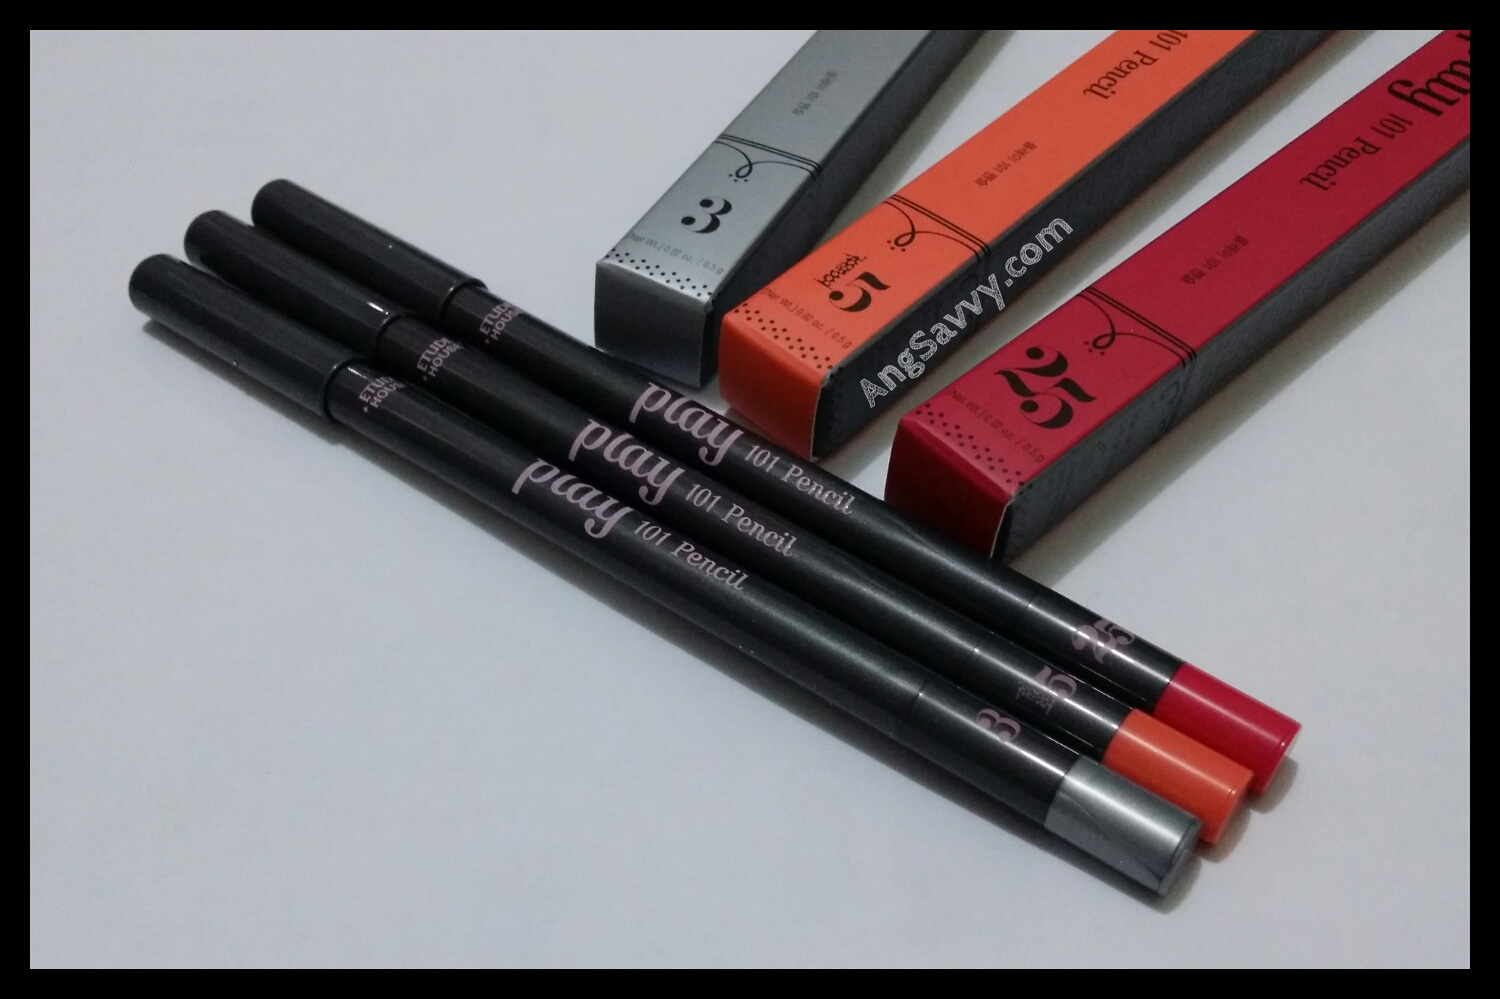 Etude House Play 101 Pencil in shades 3, 15 and 25